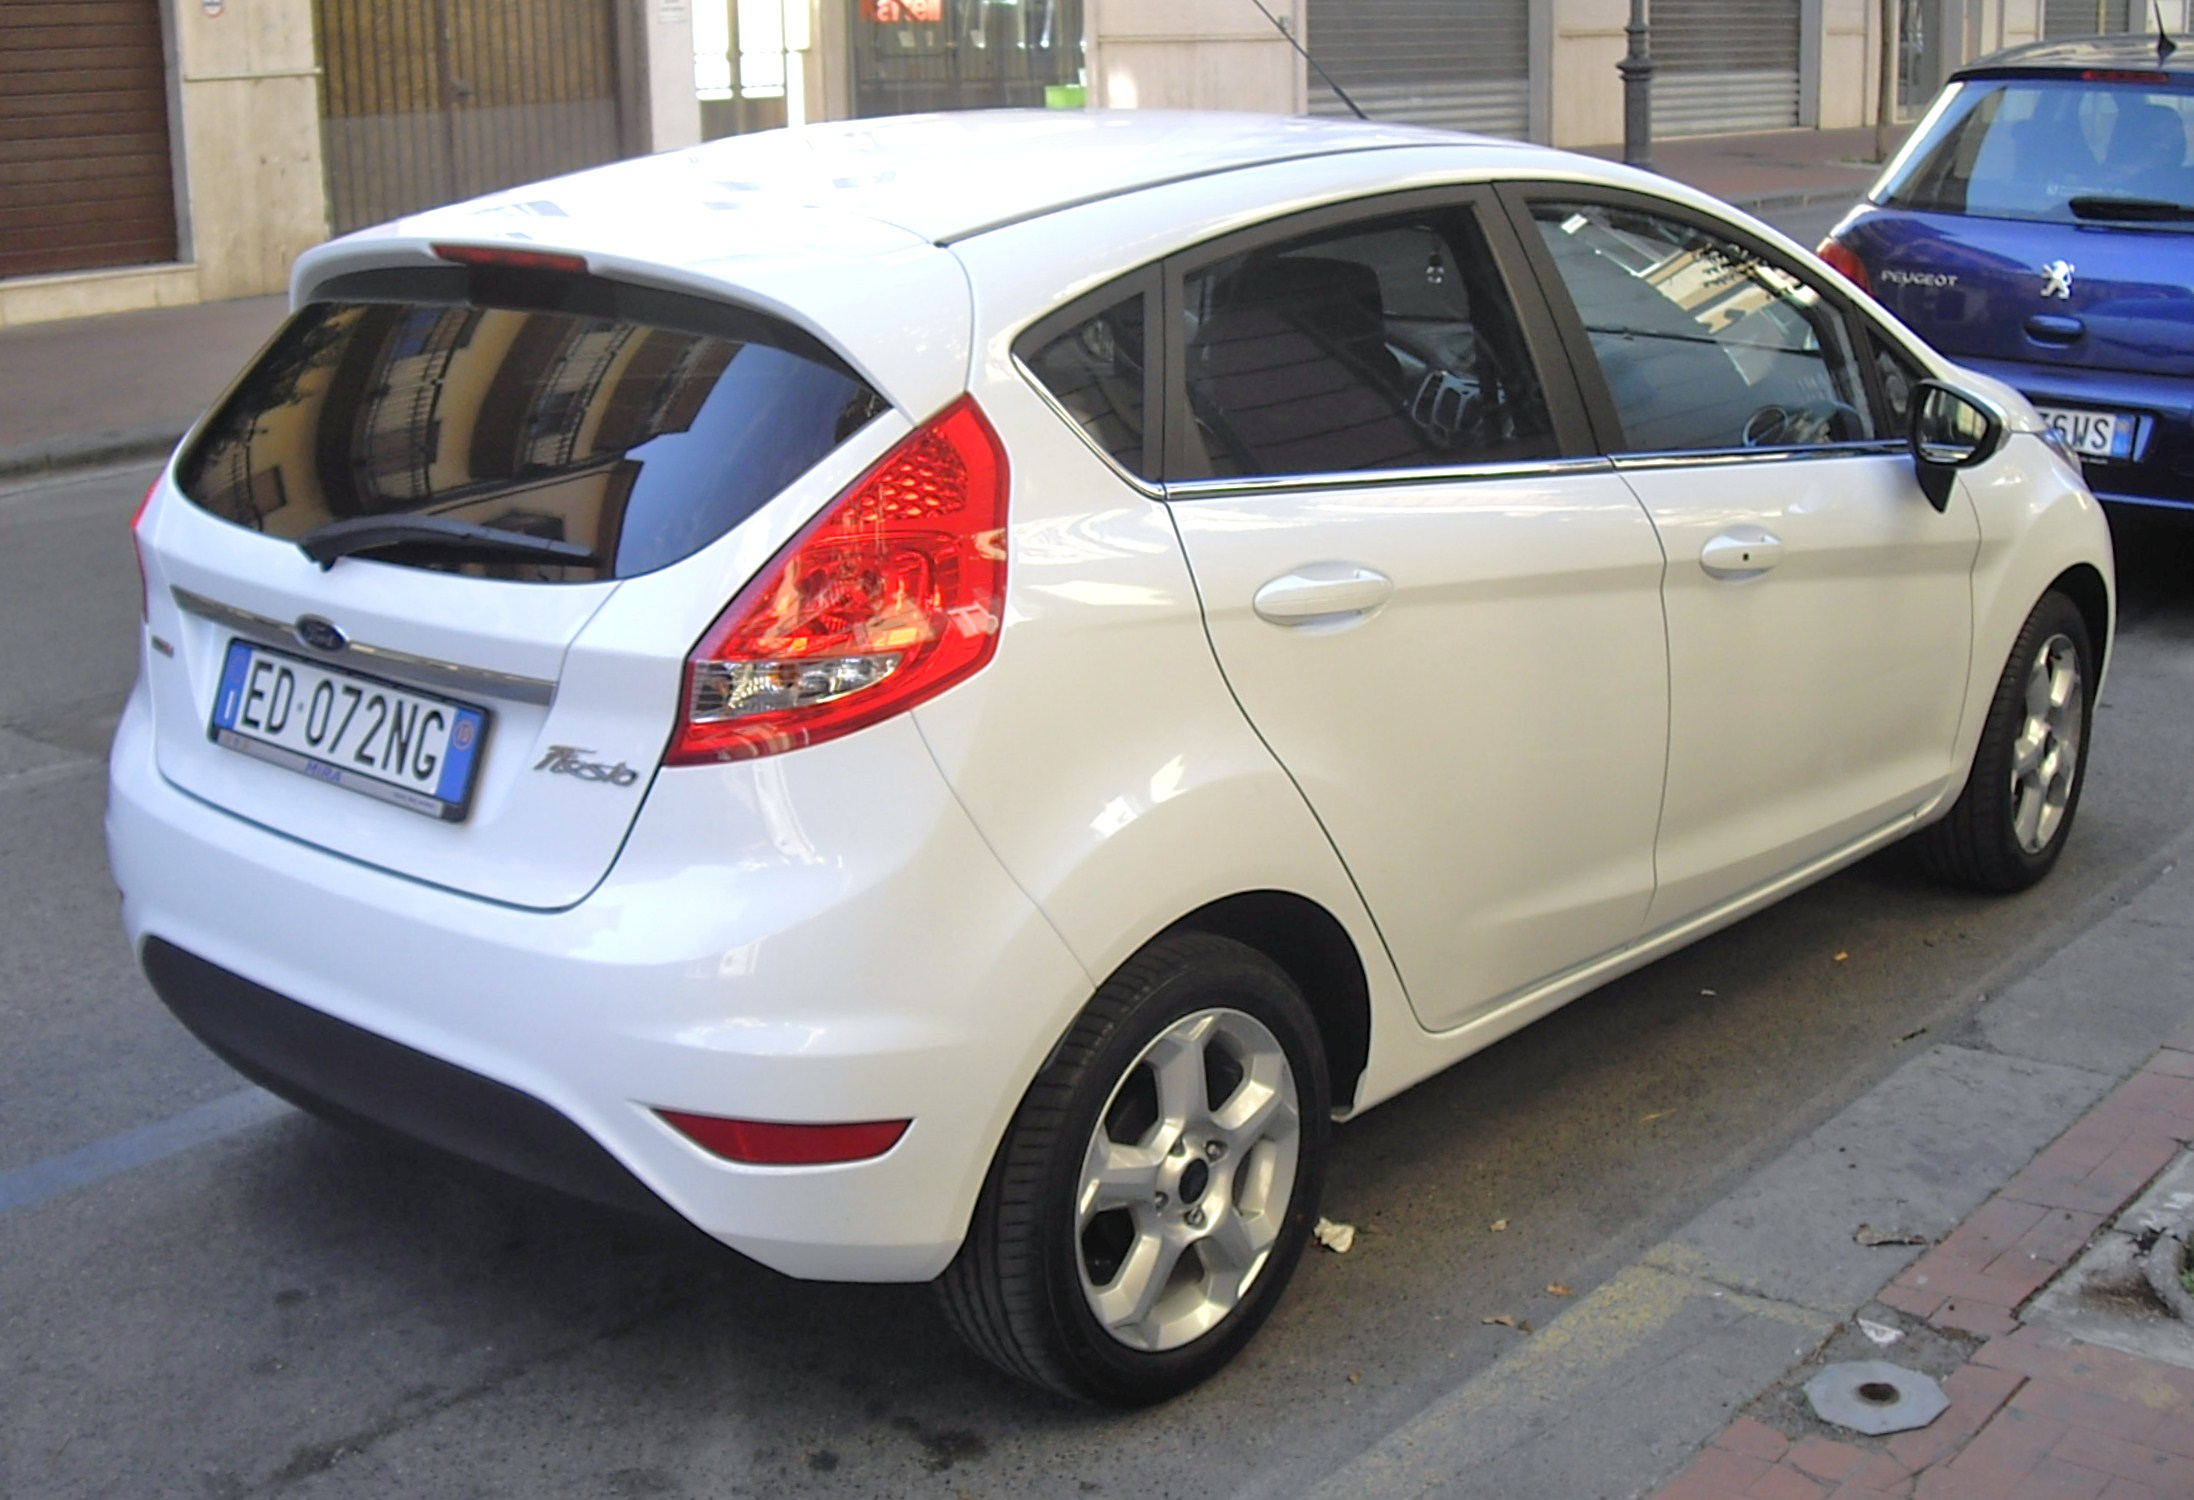 file ford fiesta 1 4 tdci rear jpg wikimedia commons